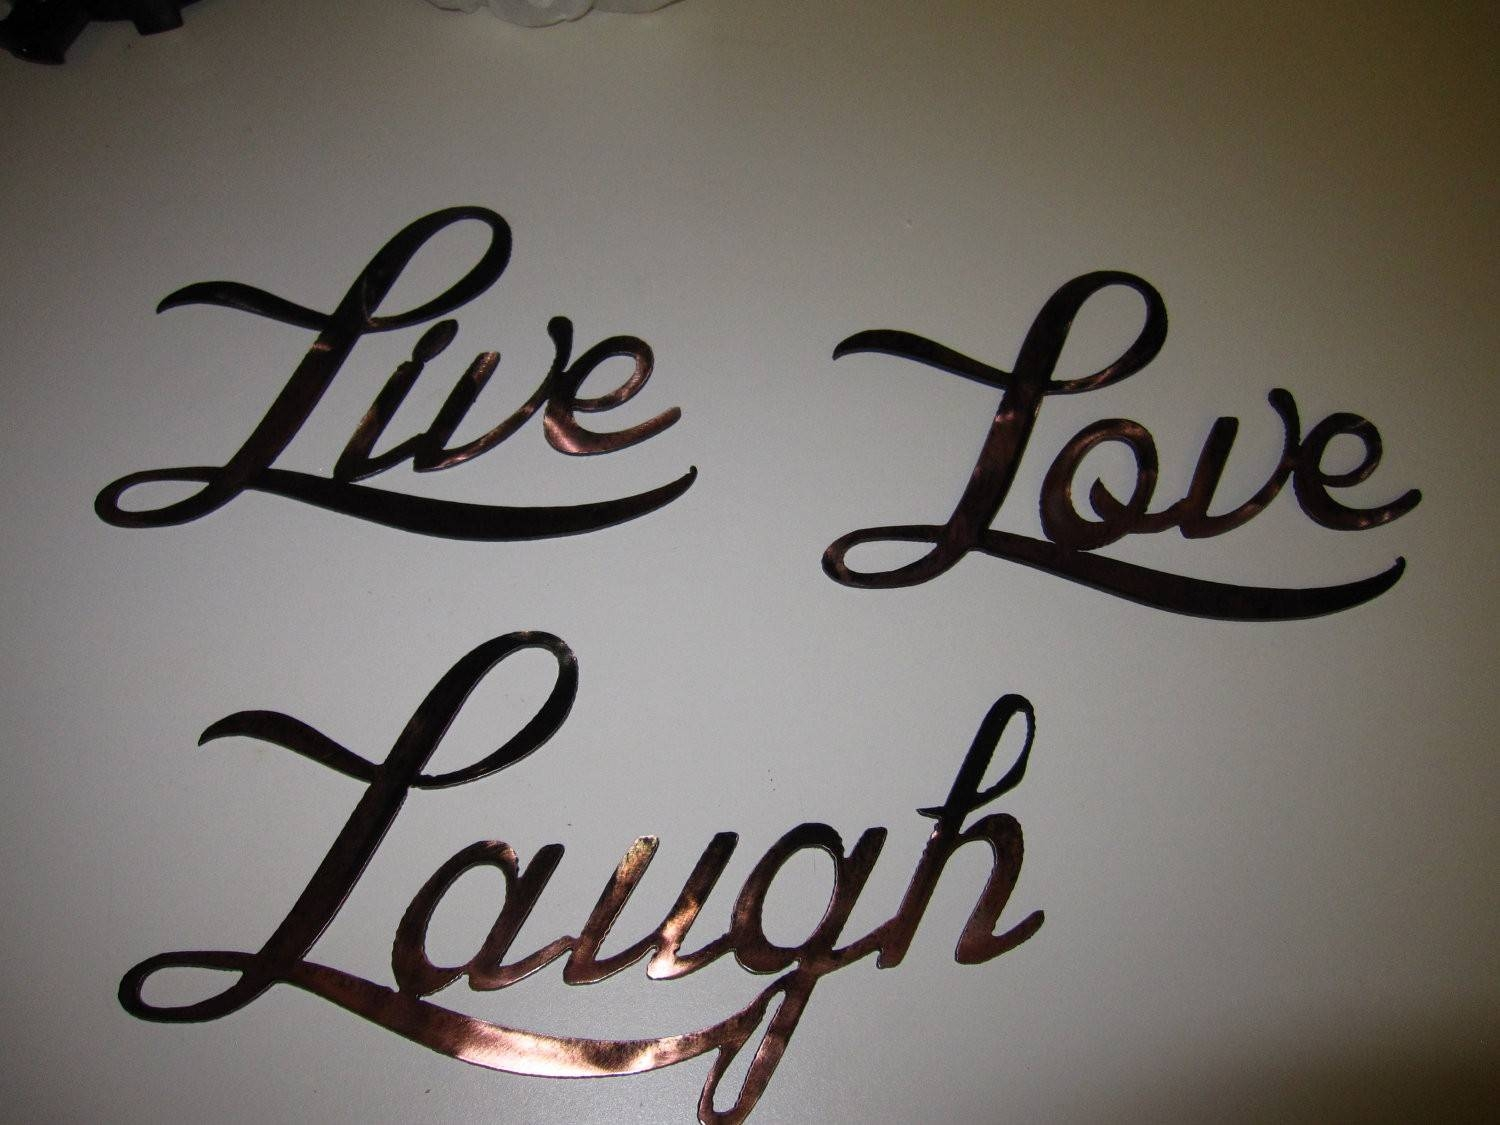 Elegant Love Wall Art | About My Blog Intended For Most Up To Date Live Laugh Love Wall Art Metal (View 7 of 25)